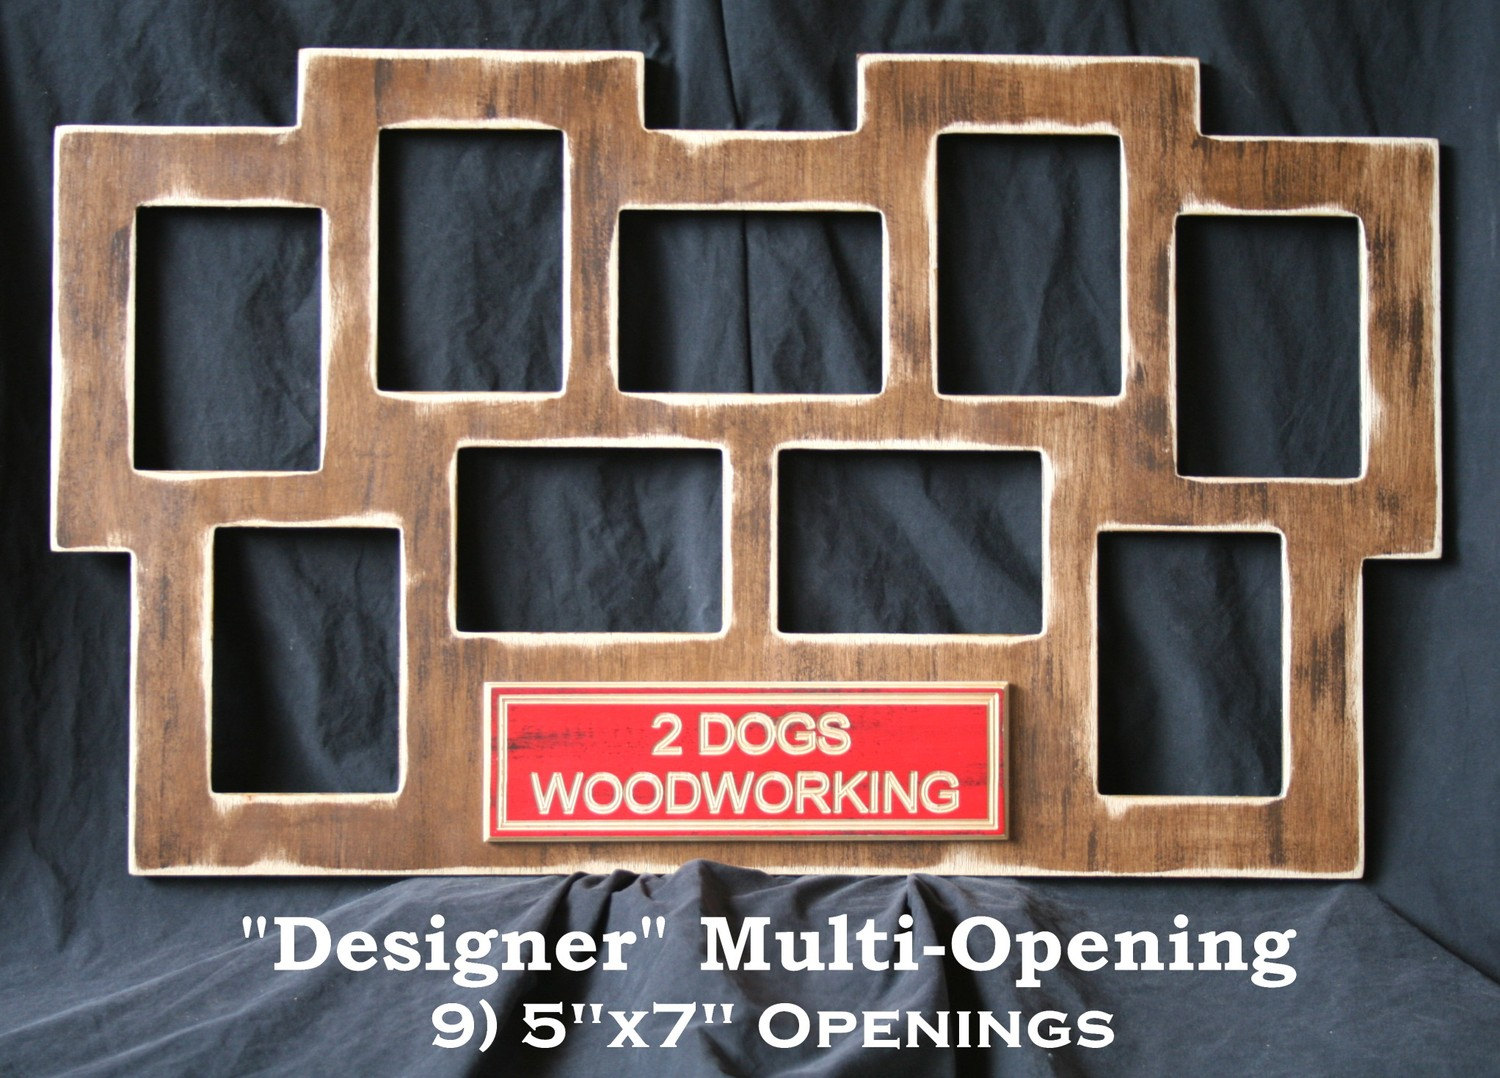 multi opening picture frame 9 5x7 collage by 2dogswoodworking. Black Bedroom Furniture Sets. Home Design Ideas